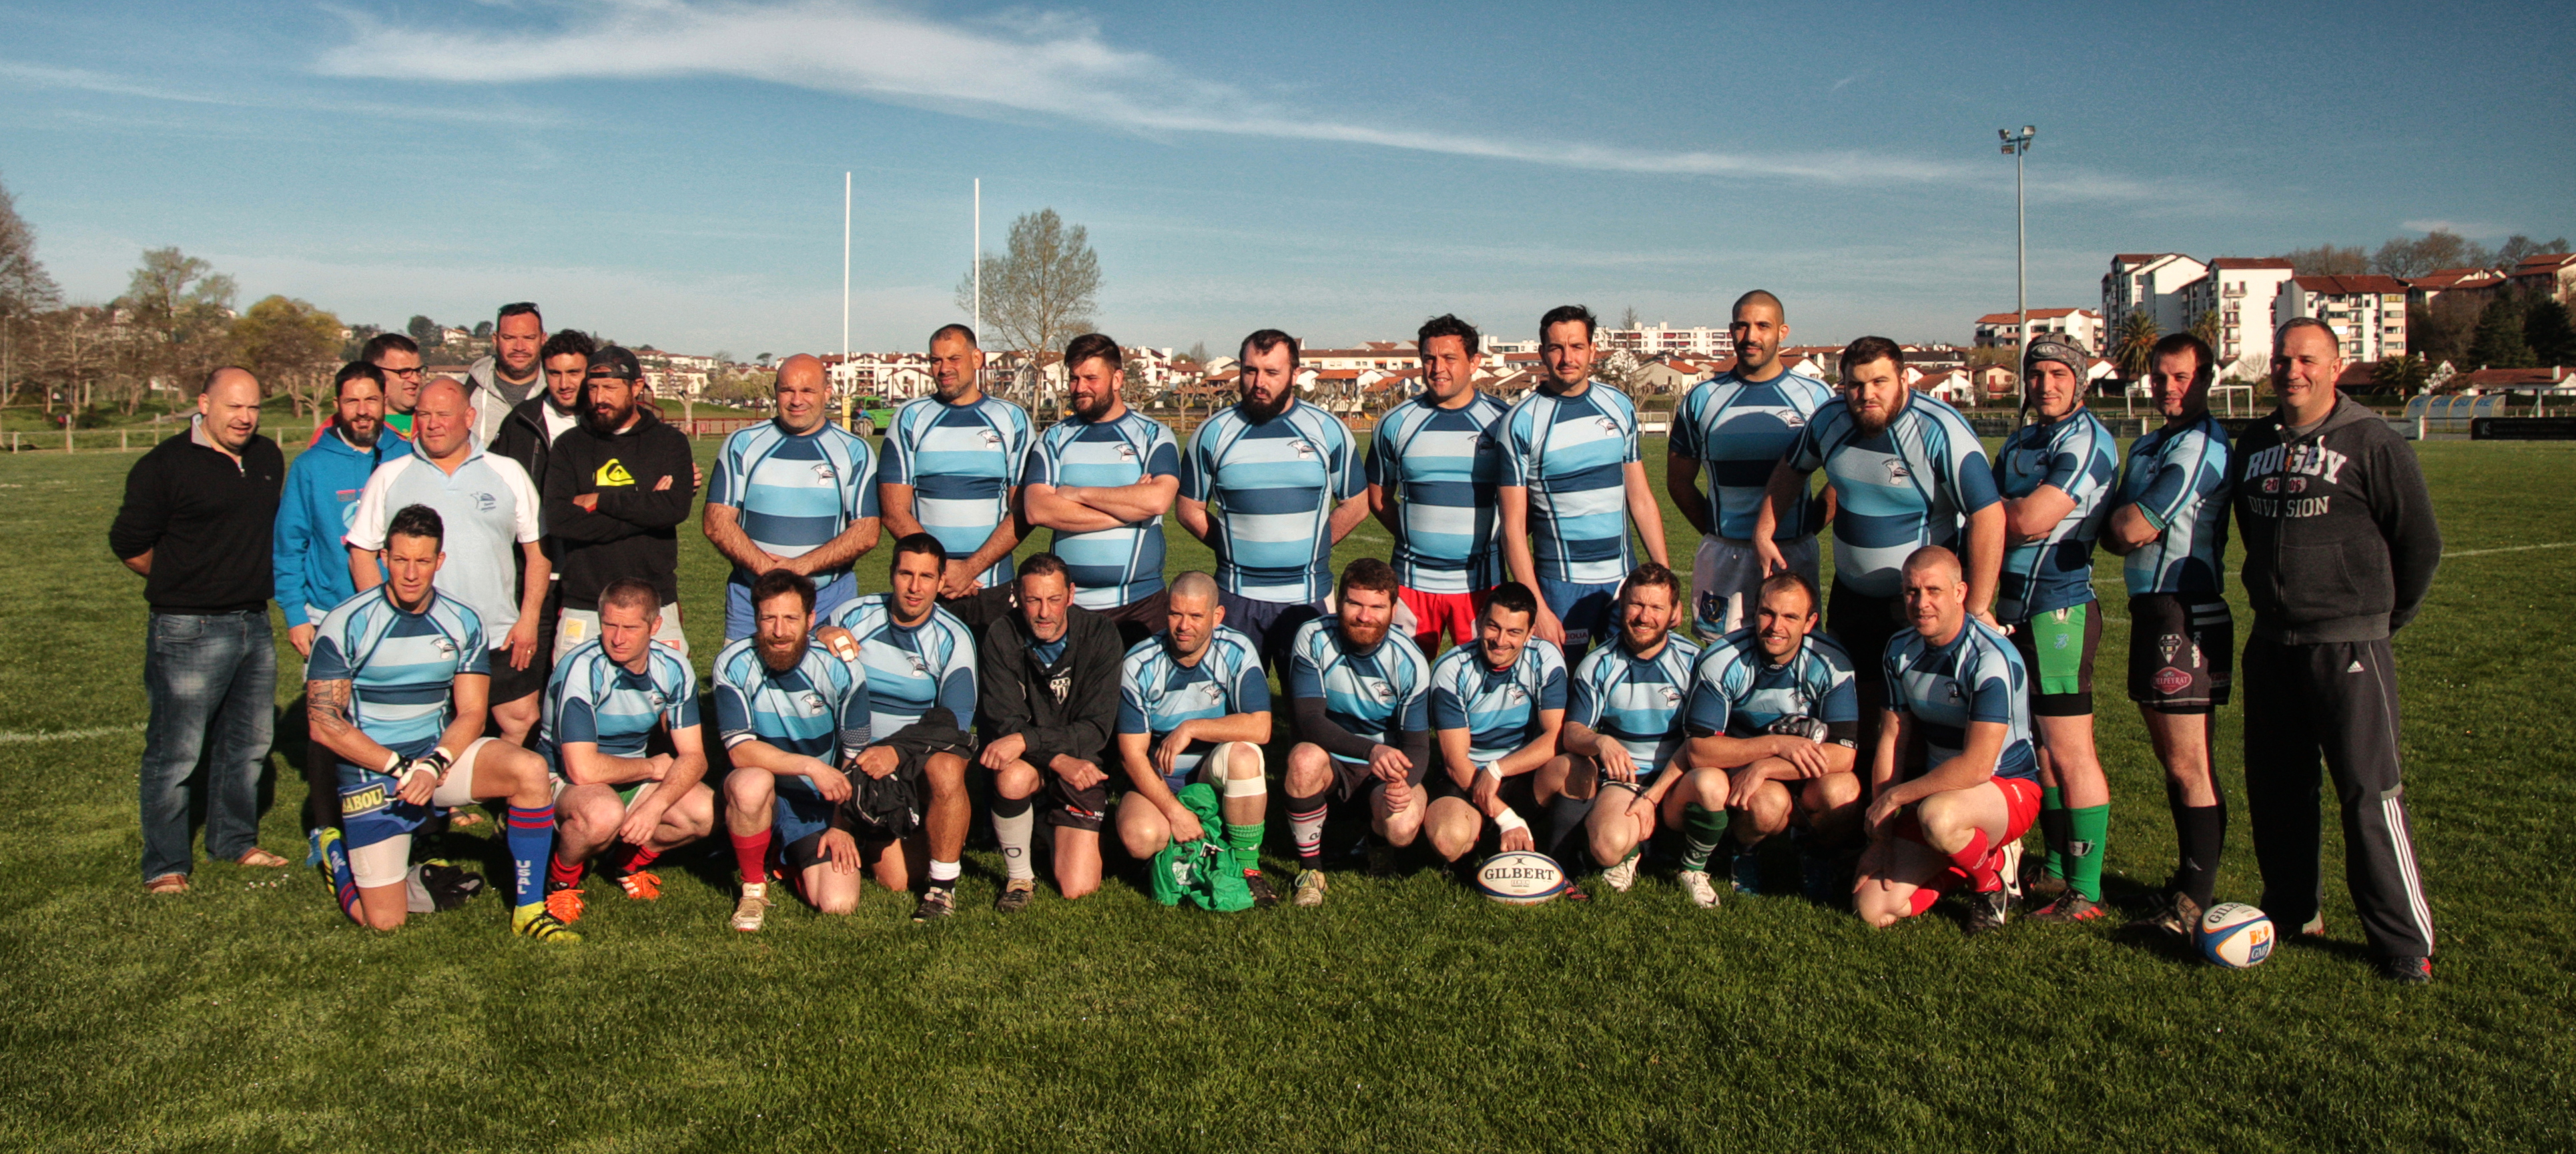 EQUIPE ATL RUGBY 2017 - 2